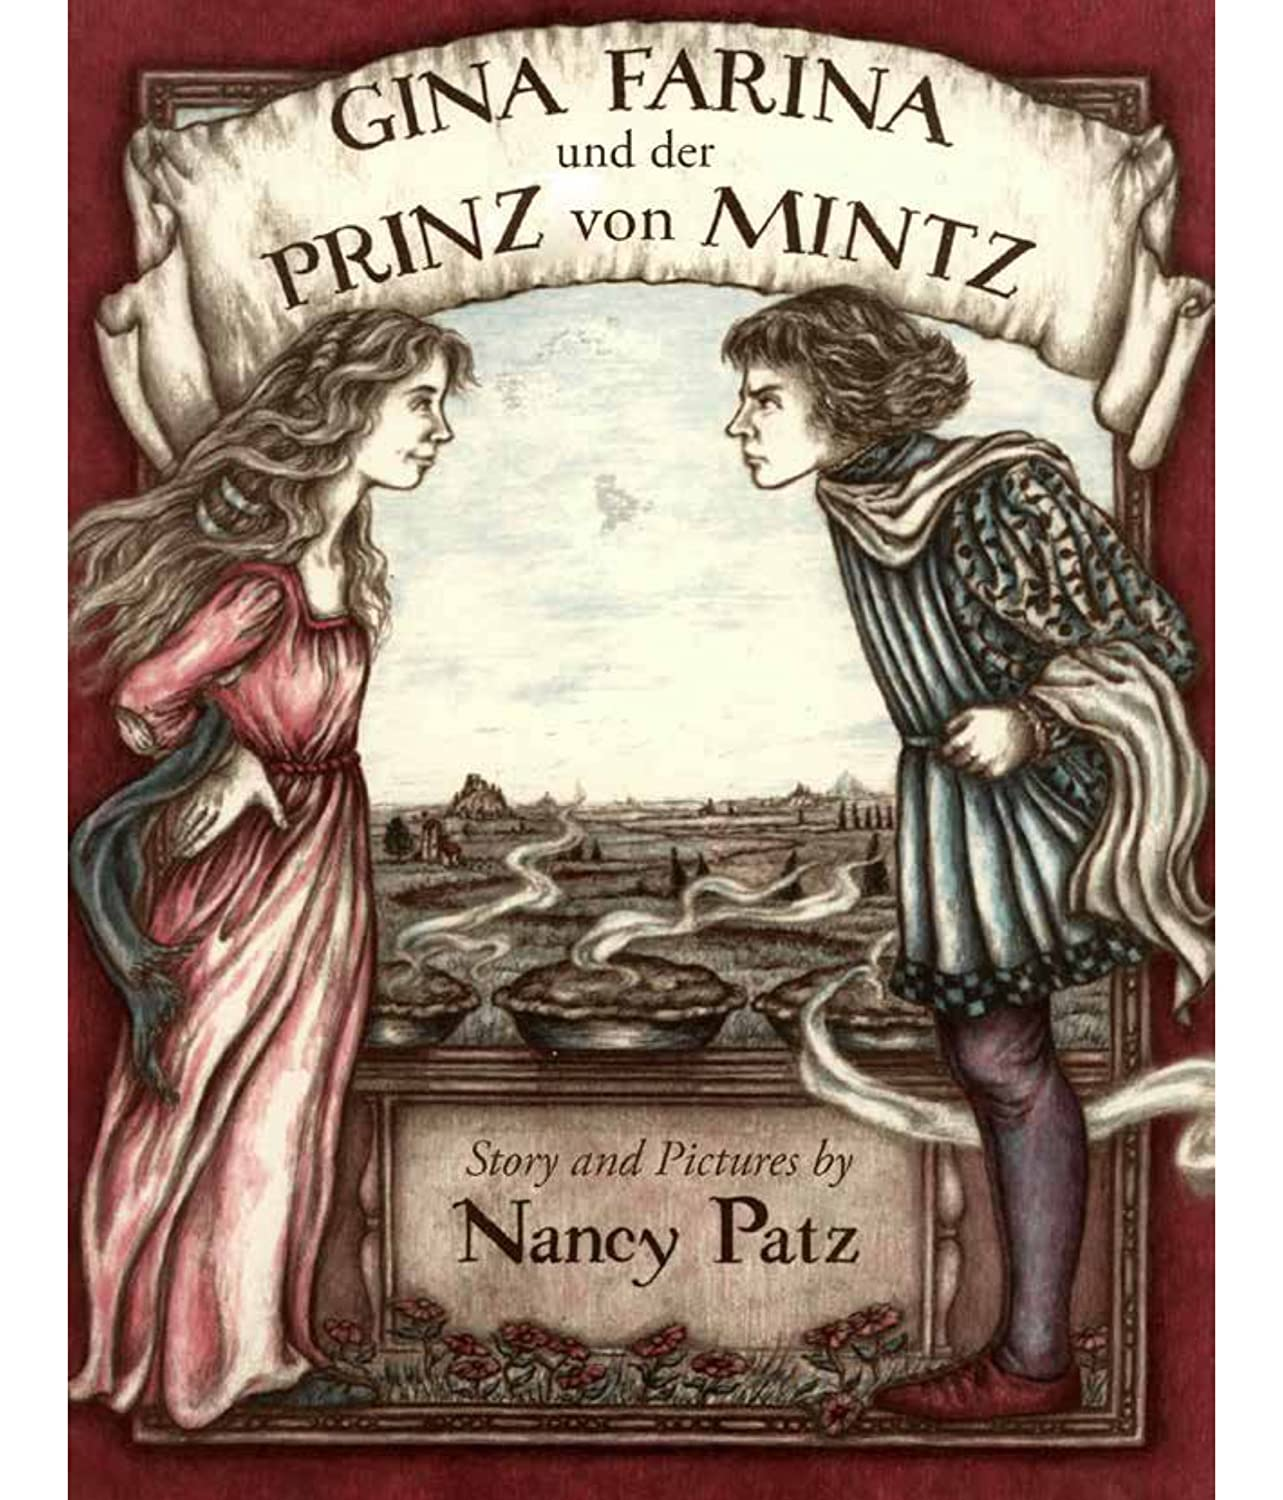 Gina Farina und der Prinz von Mintz (German Edition) eBook: Nancy ...